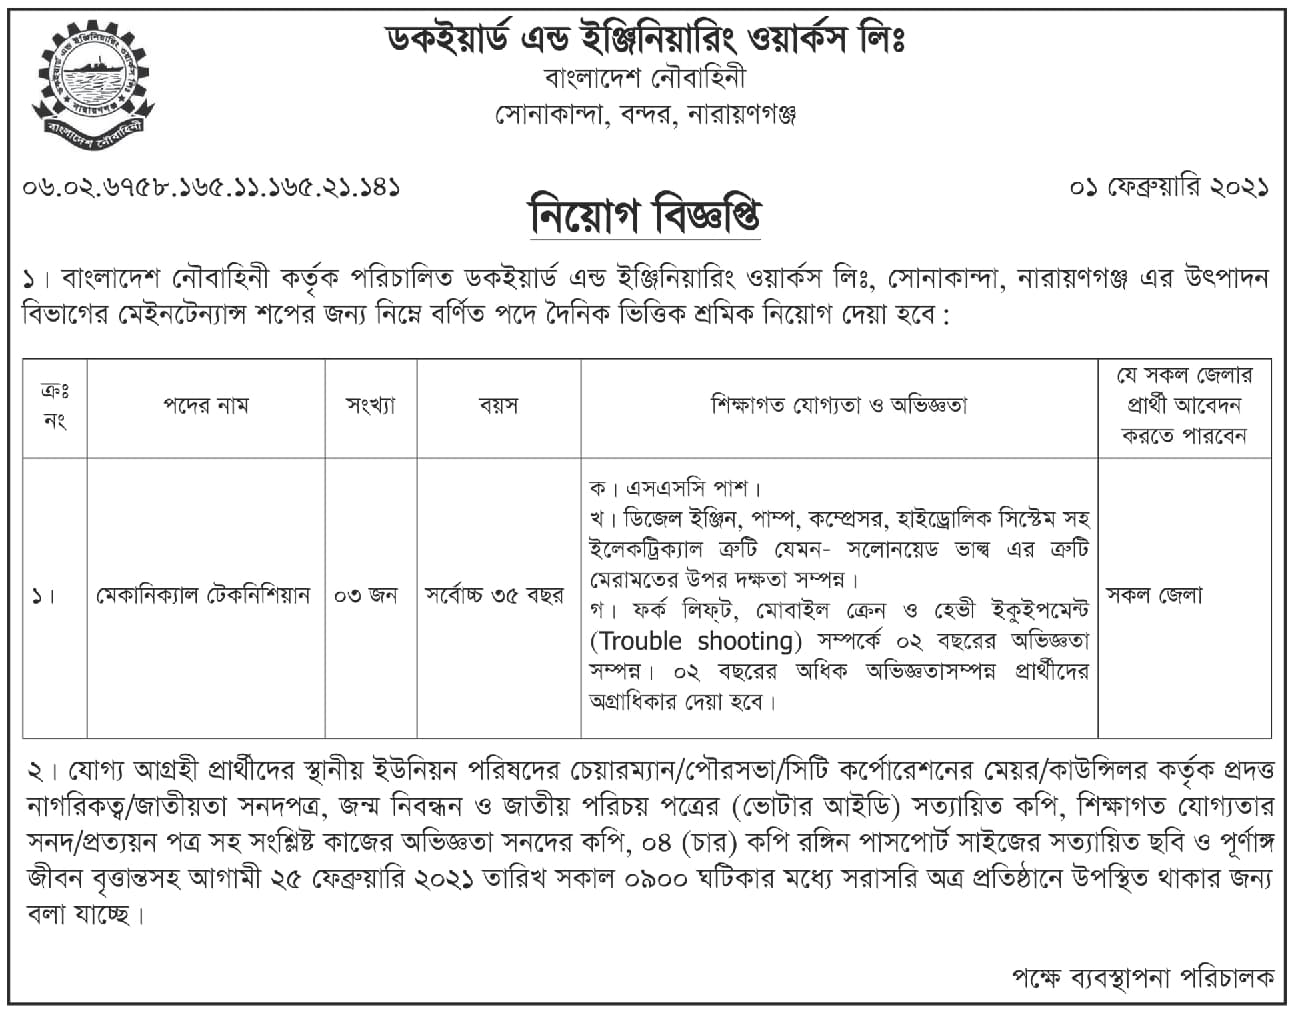 Dockyard and Engineering Works Limited Job Circular 2021